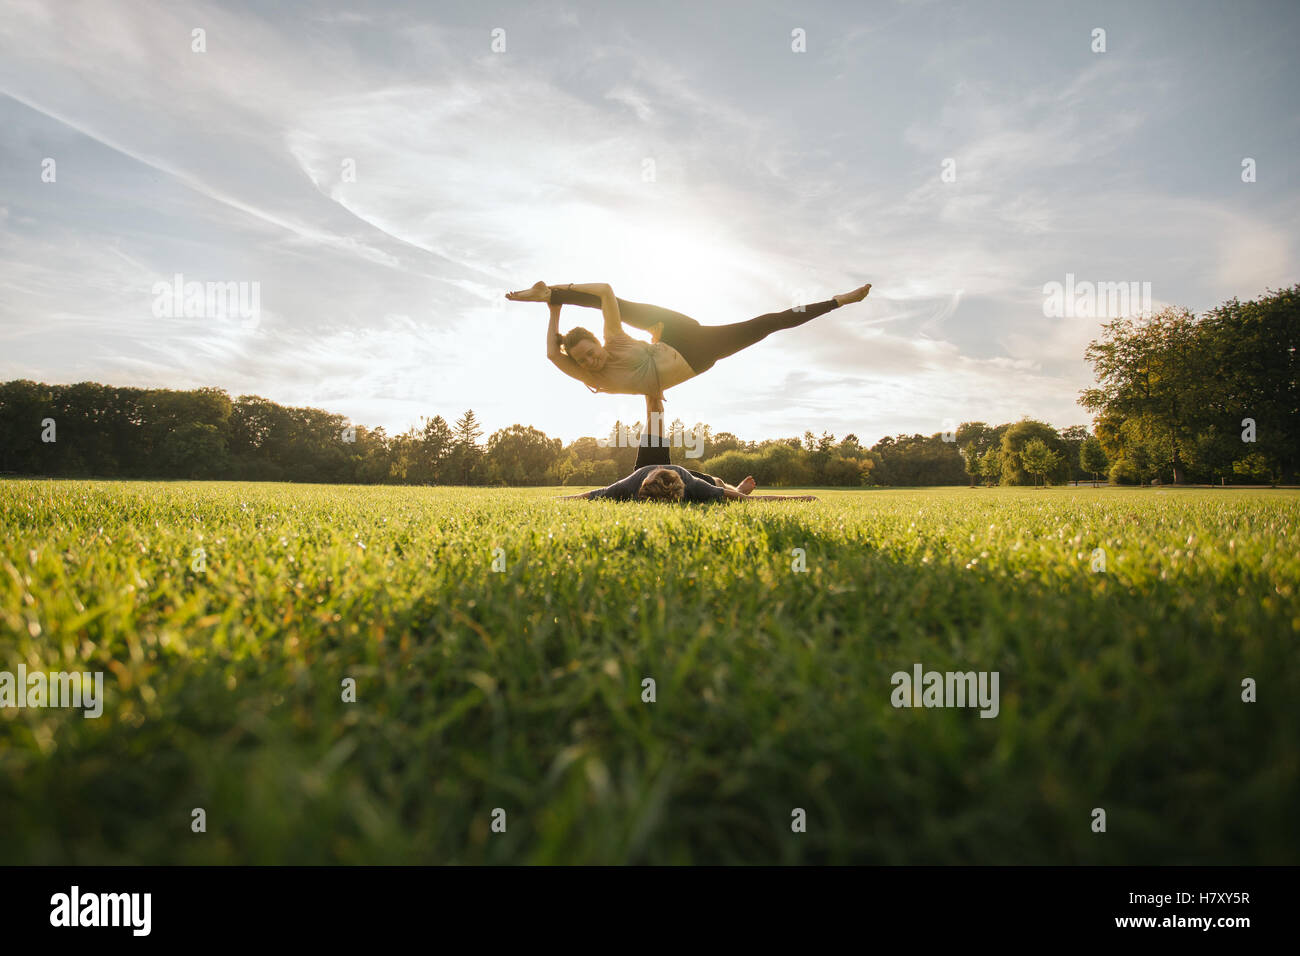 Fit young couple doing yoga acro. Homme étendu sur l'herbe et l'équilibre entre la femme à Photo Stock